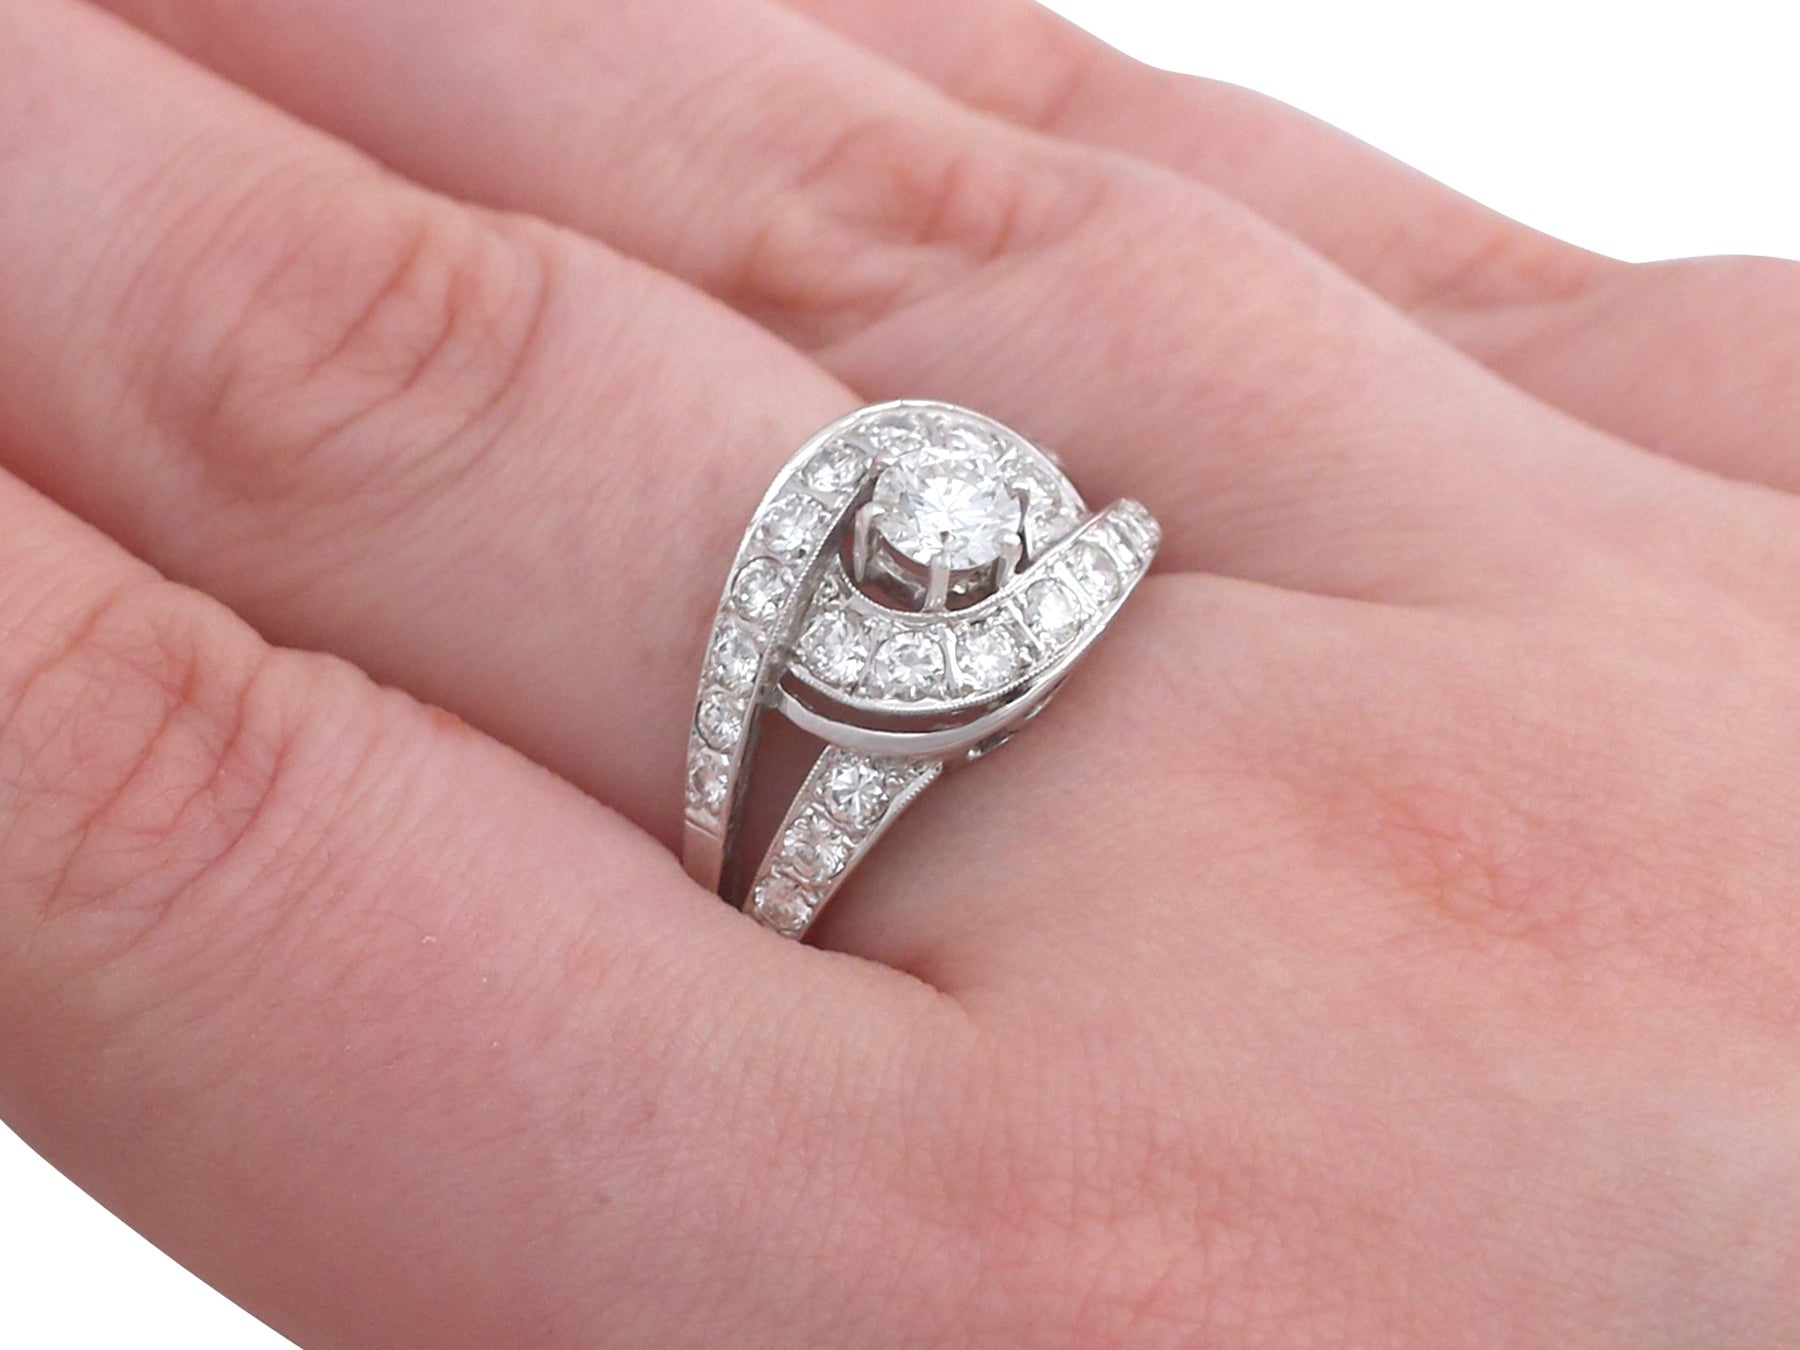 1960s German 1.88 Carat Diamond and White Gold Dress Ring at 1stdibs